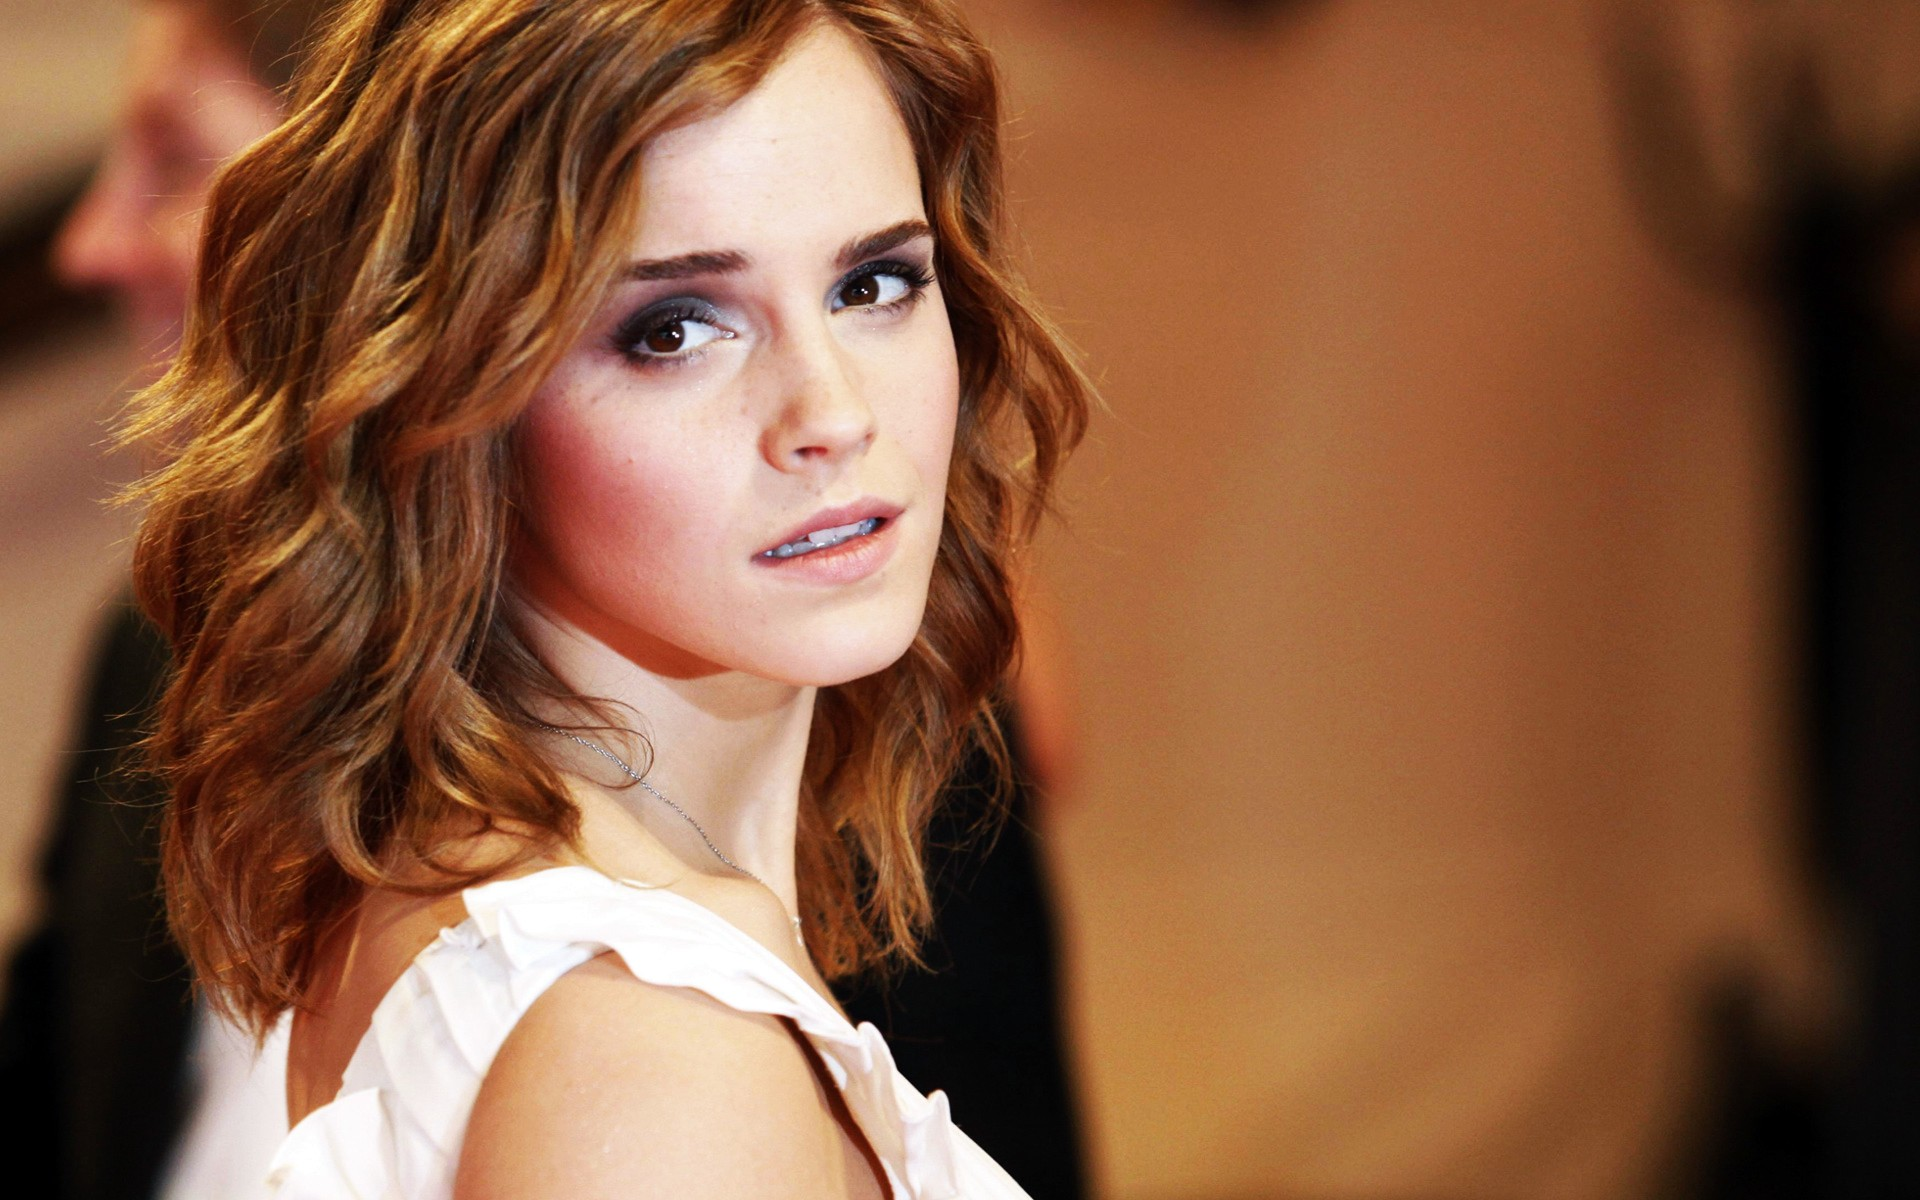 Emma Watson at Metropolitan Muesum 2010 wallpaper download